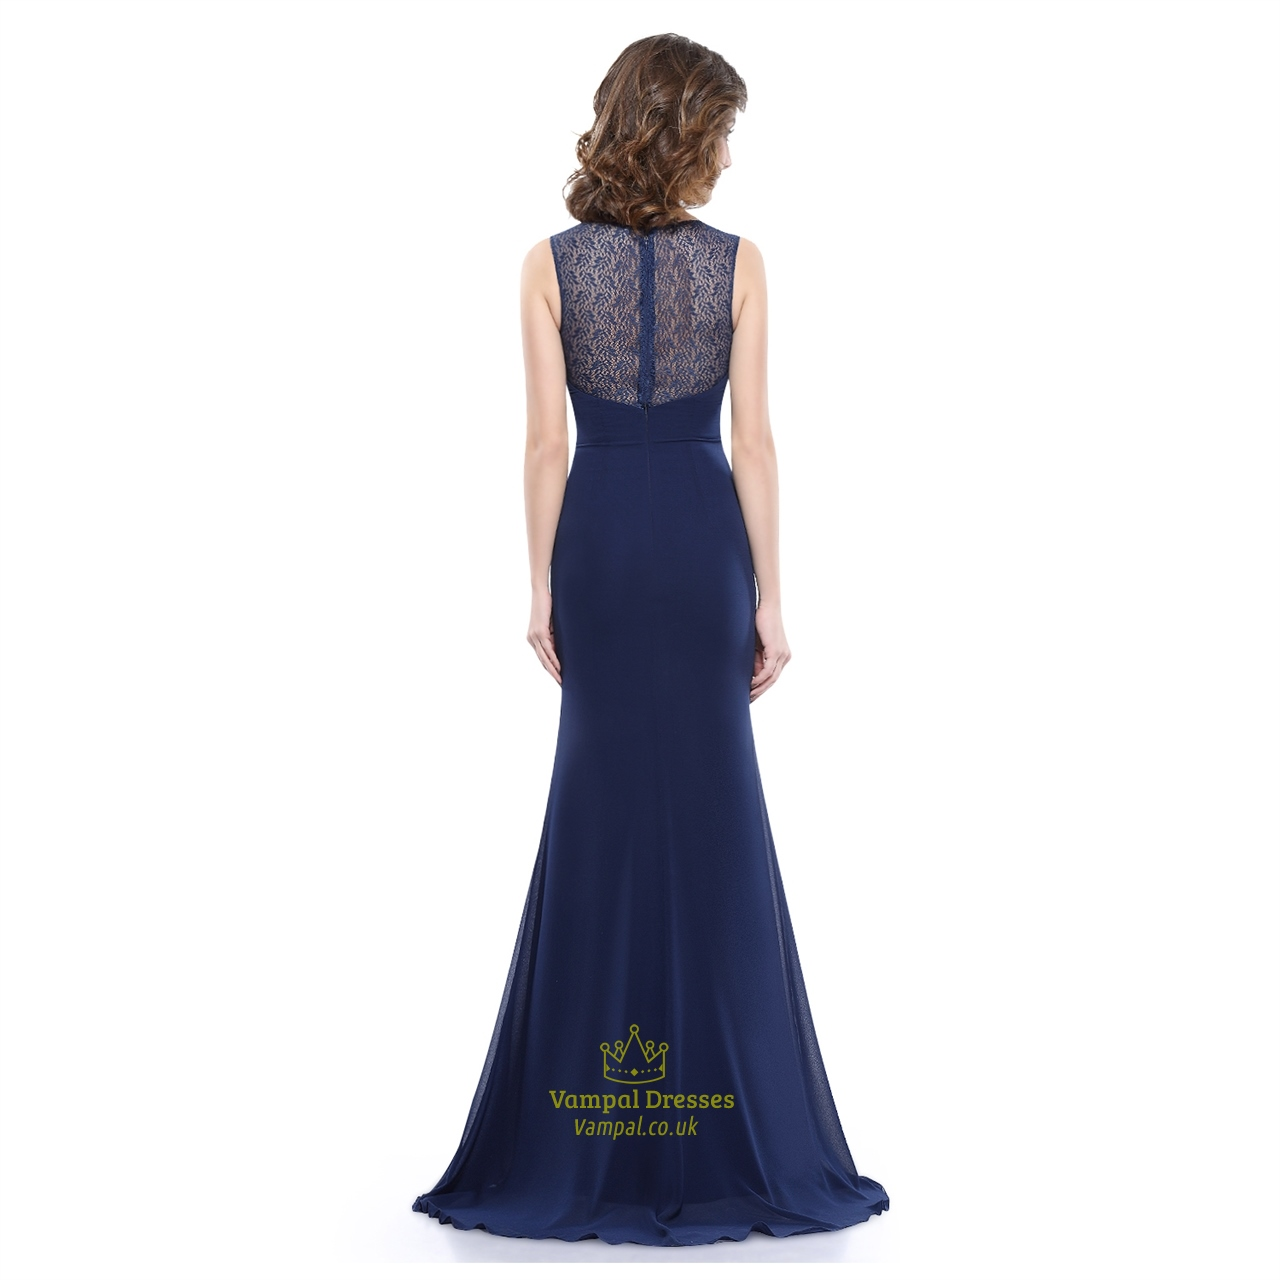 Navy Blue Chiffon Evening Dress With Lace Bodice And ...